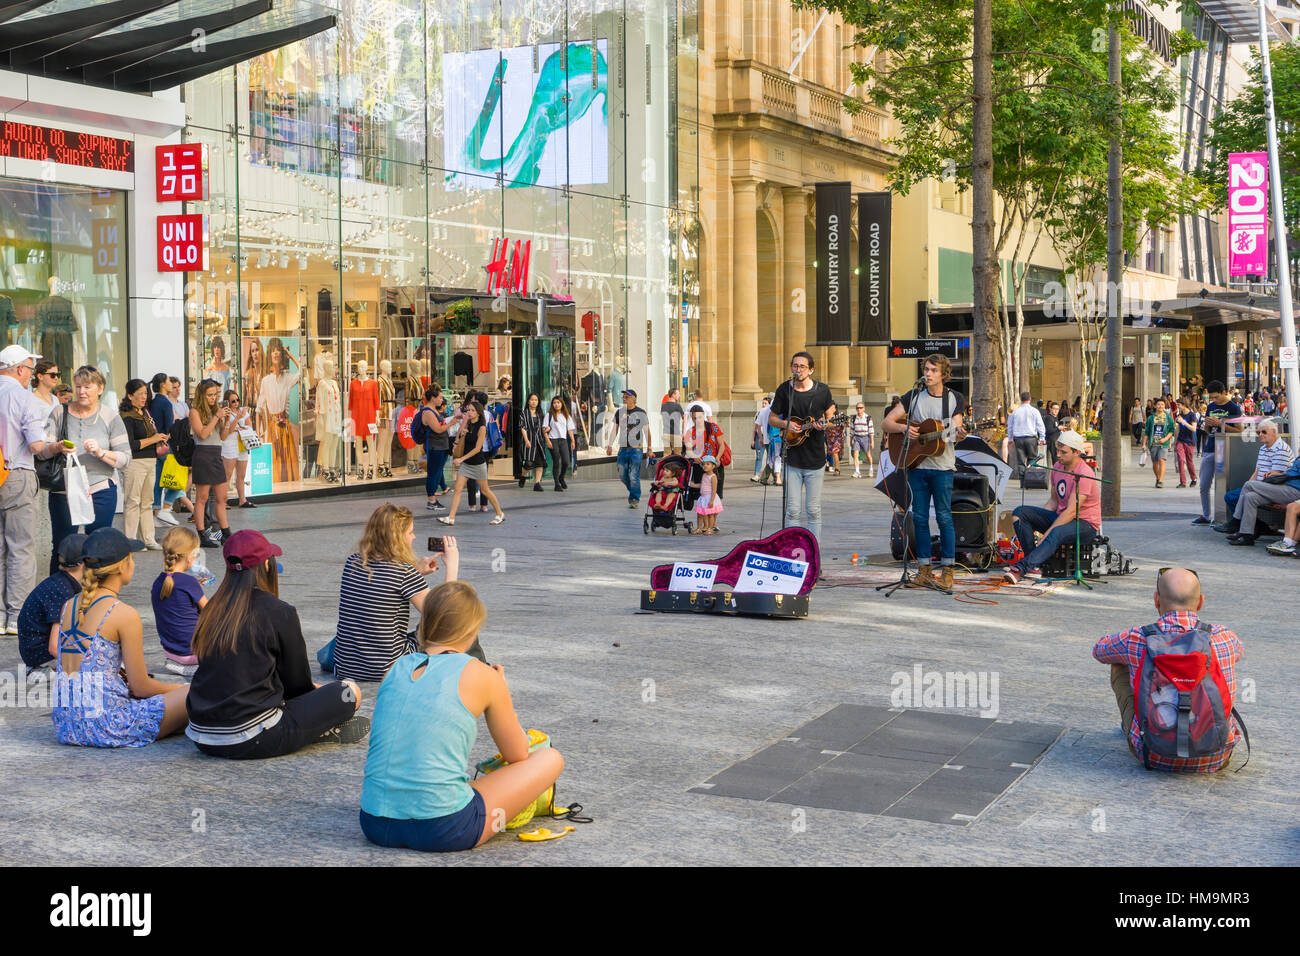 Street performers in Queen Street Mall, Brisbane - Stock Image